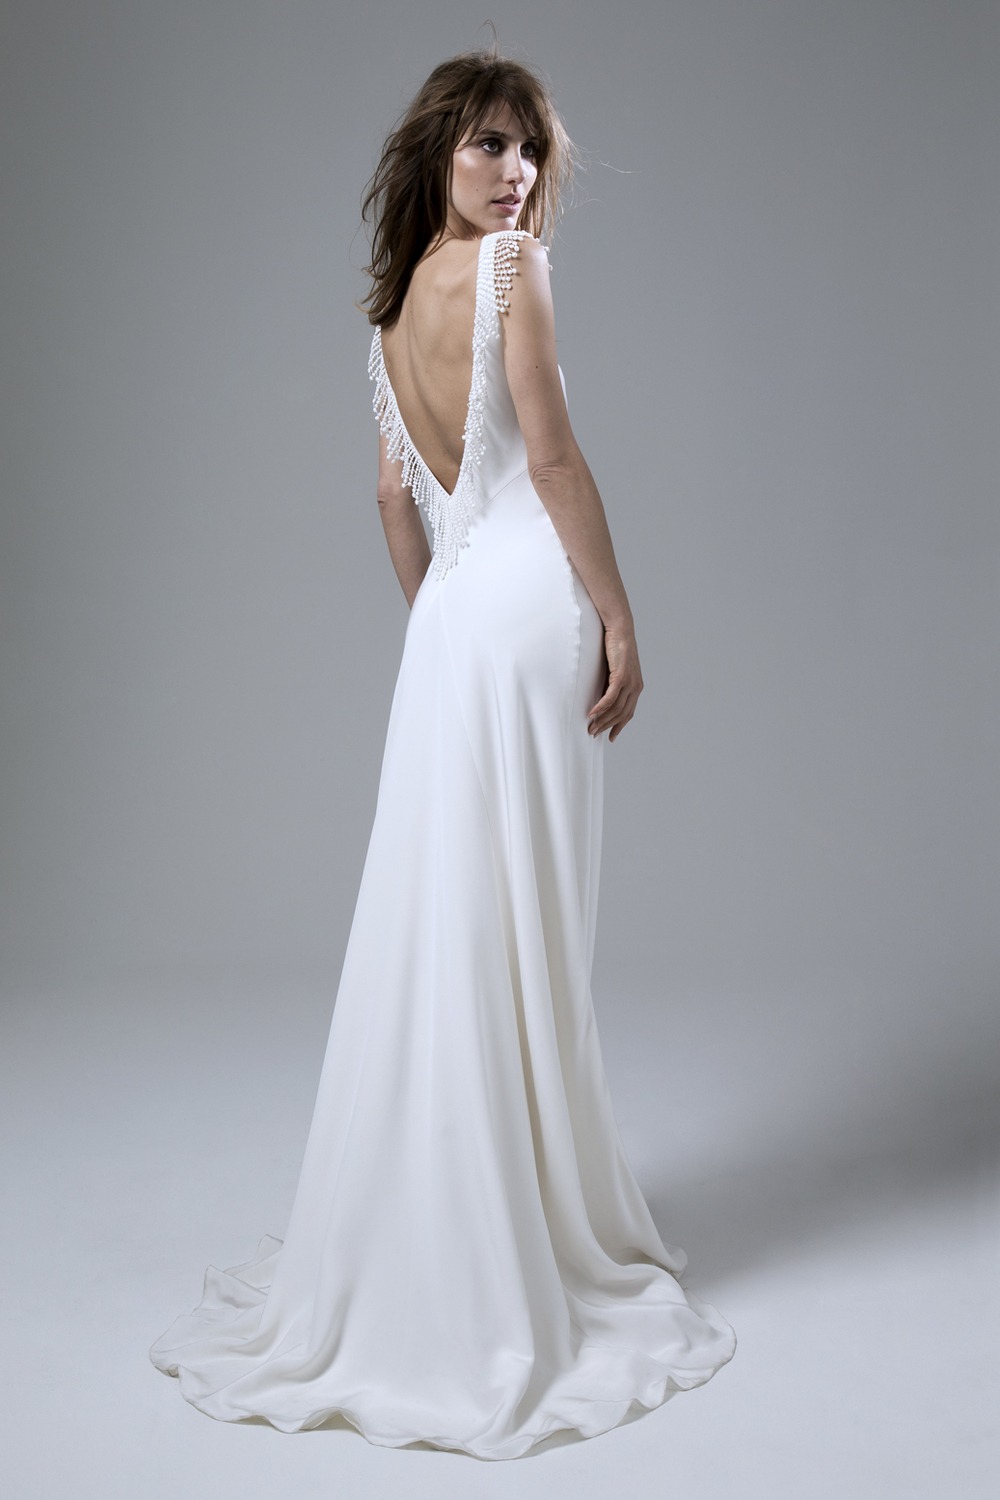 Silk crepe bias cut Vera wedding dress with French knot detail and plunging low back by Halfpenny London